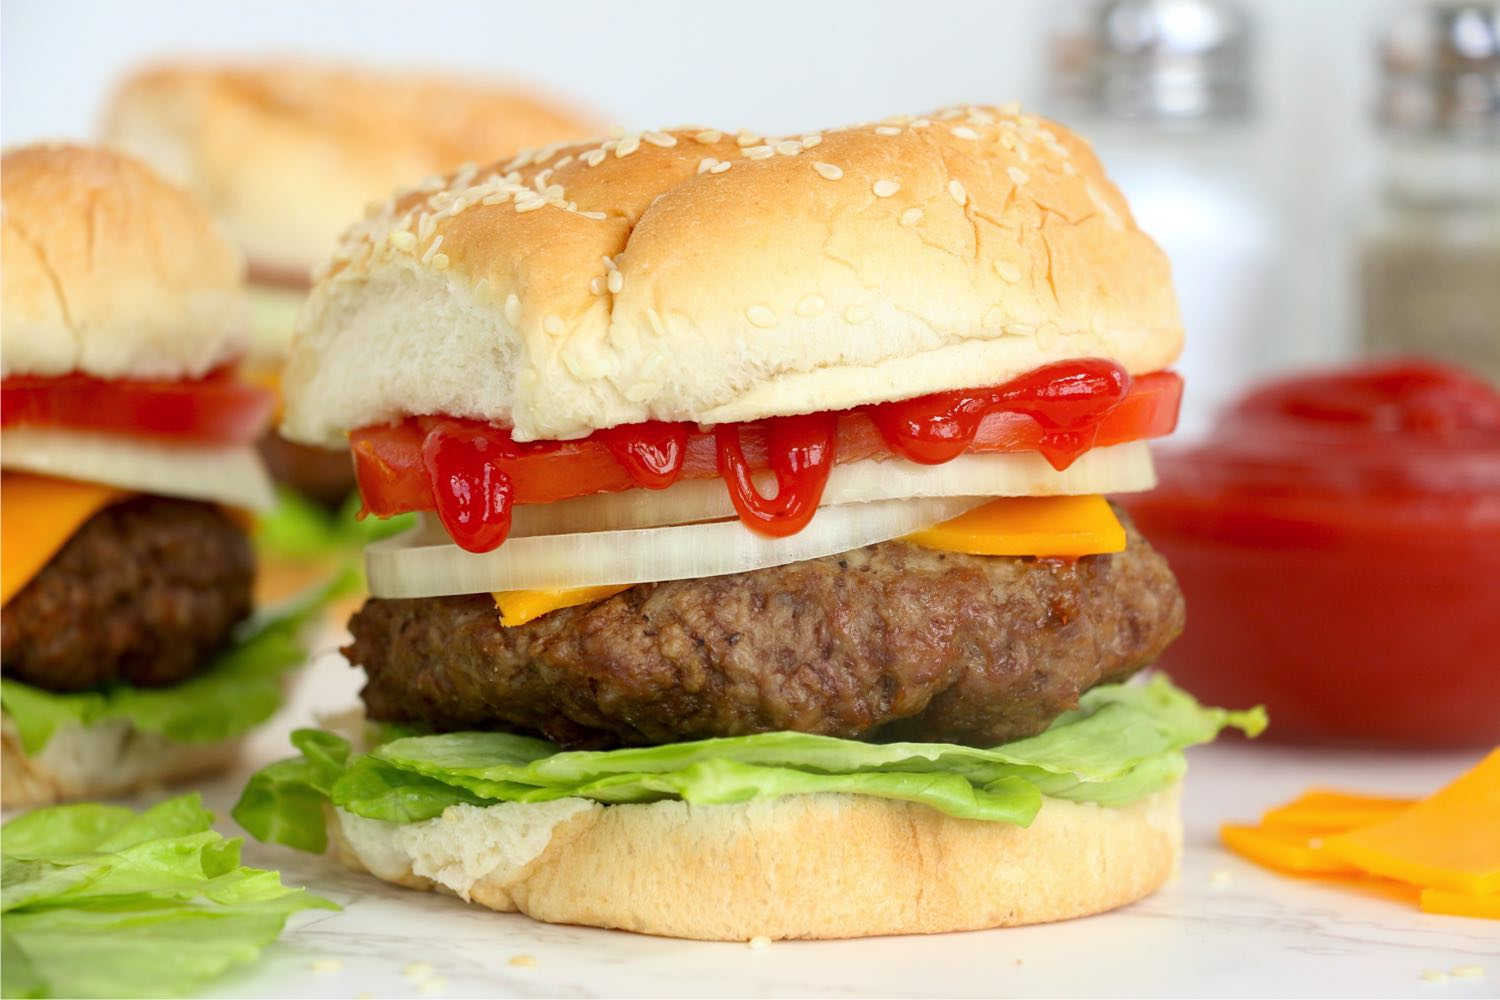 Burgers topped with ketchup